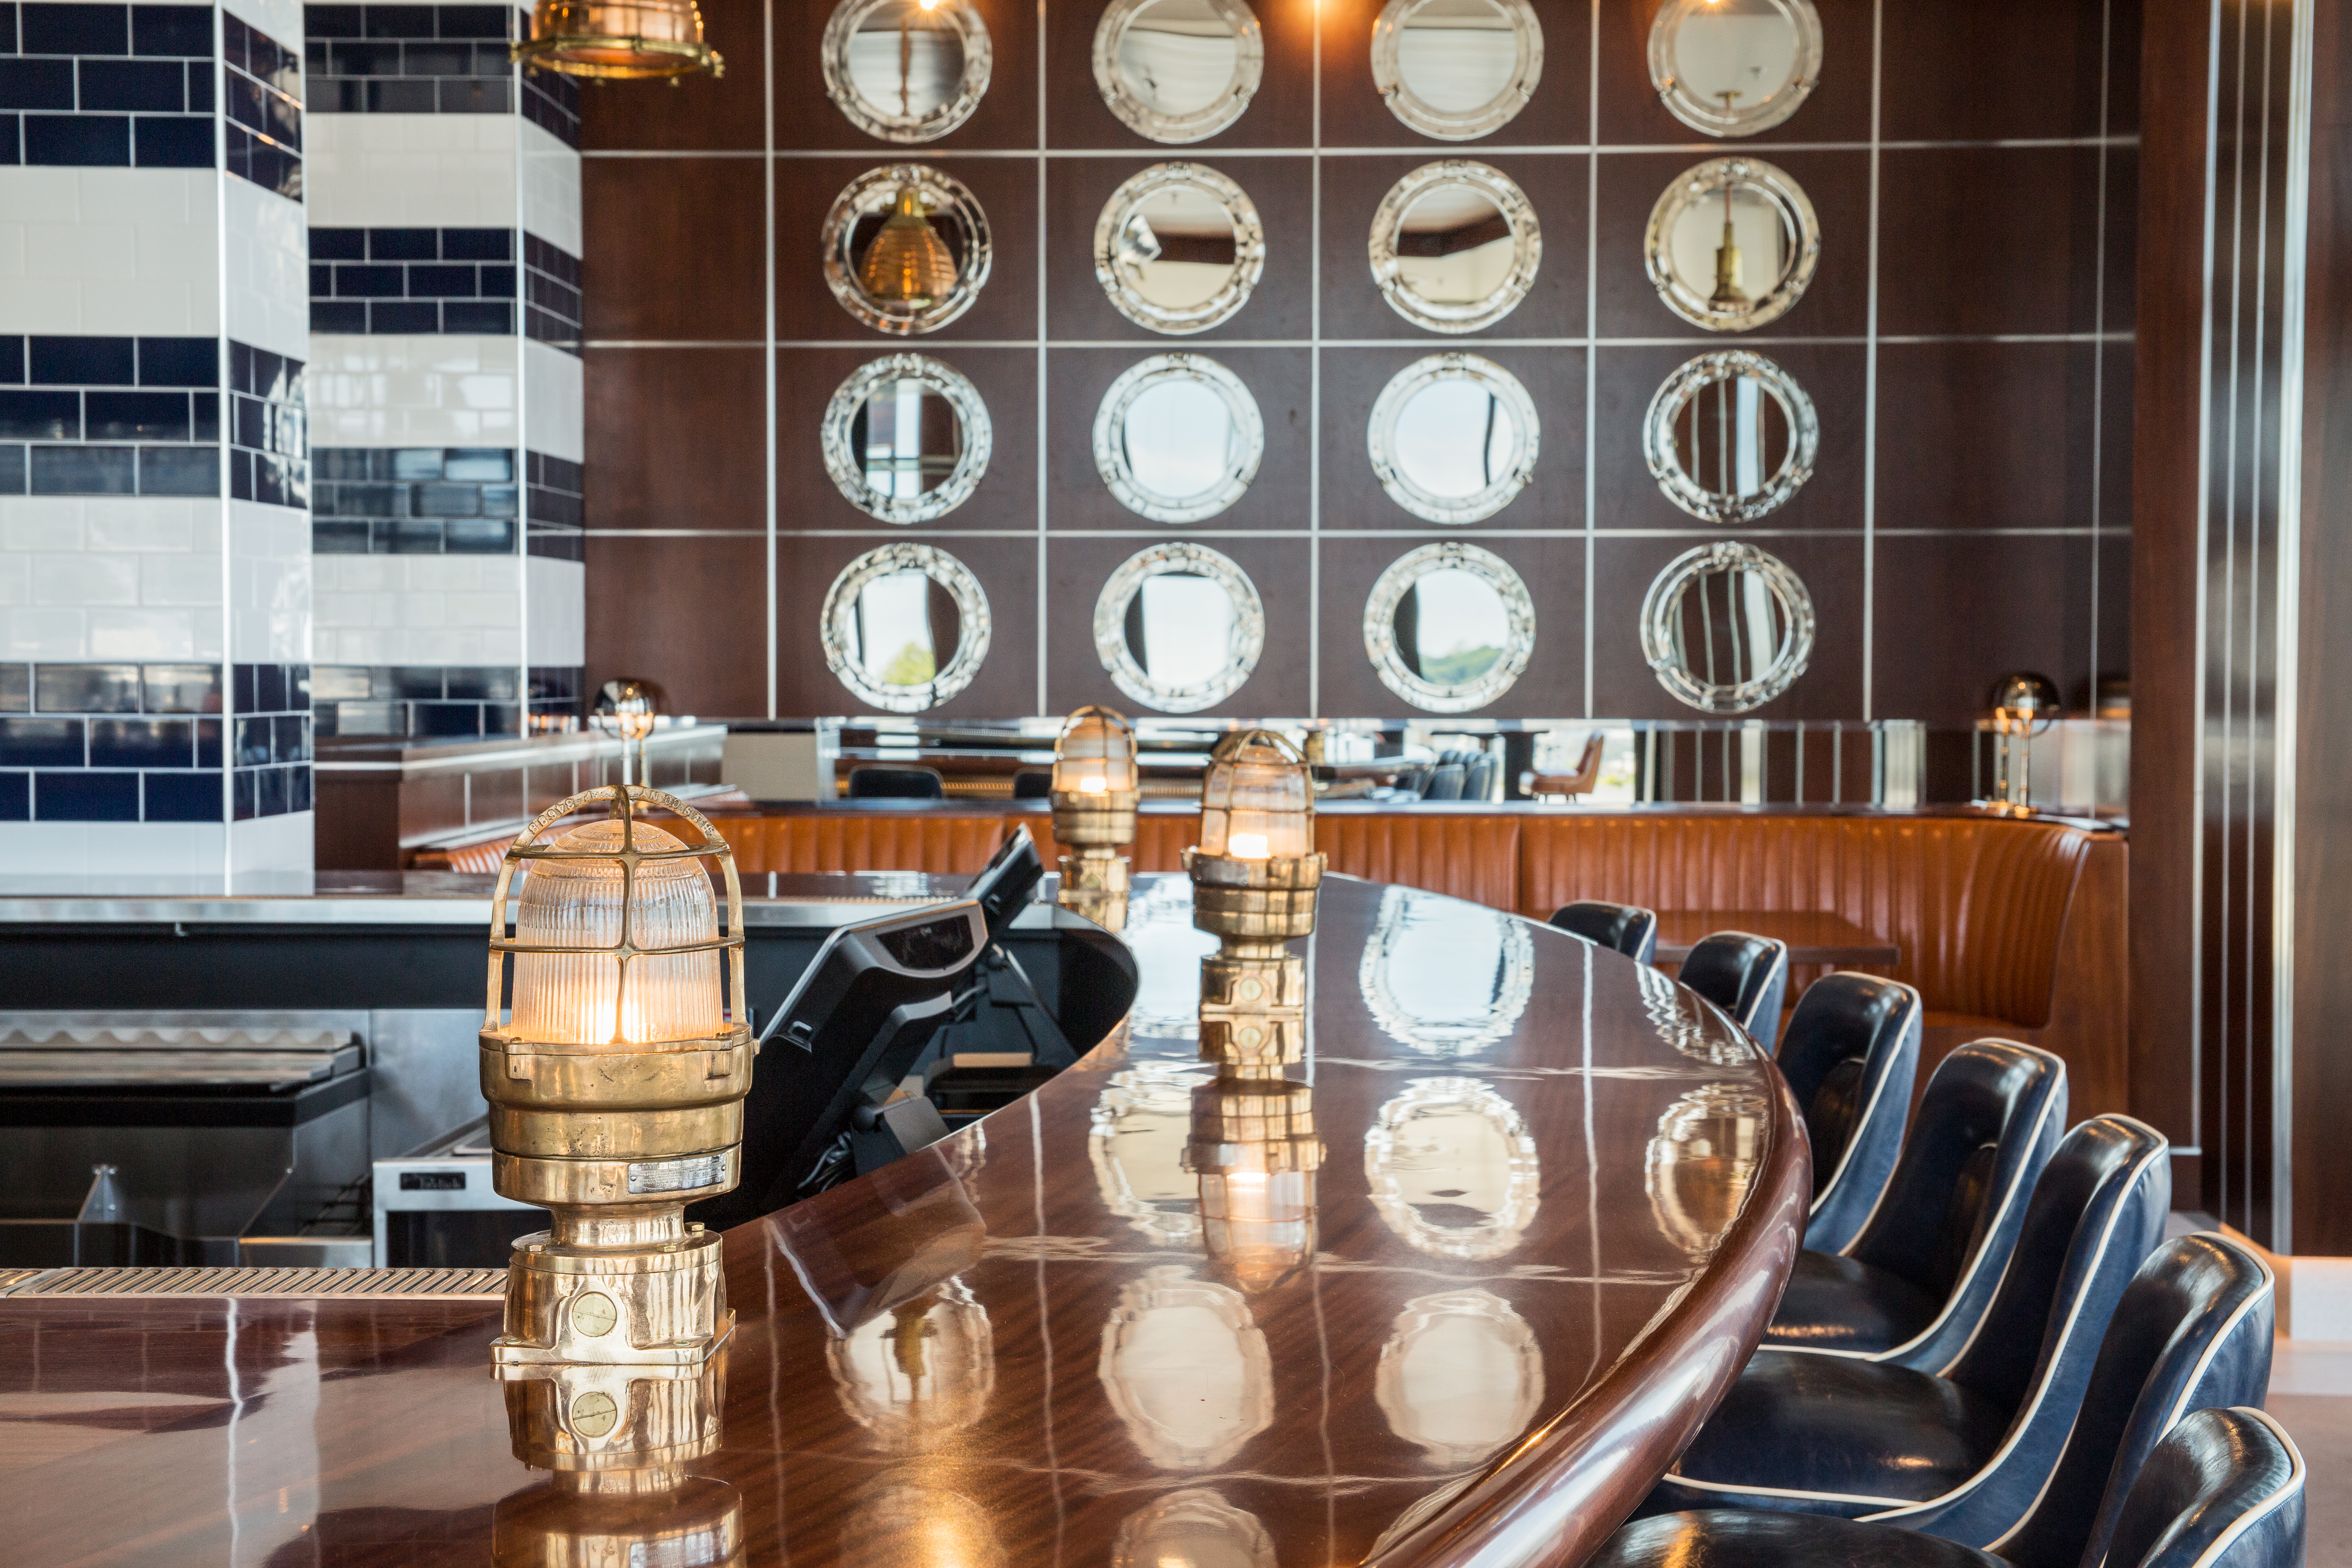 A curved wooden bar at ReelHouse Marina Bay arcs towards the rear of the frame, with blue barstools in alignment and porthole-shaped mirrors adorning the wall in the back